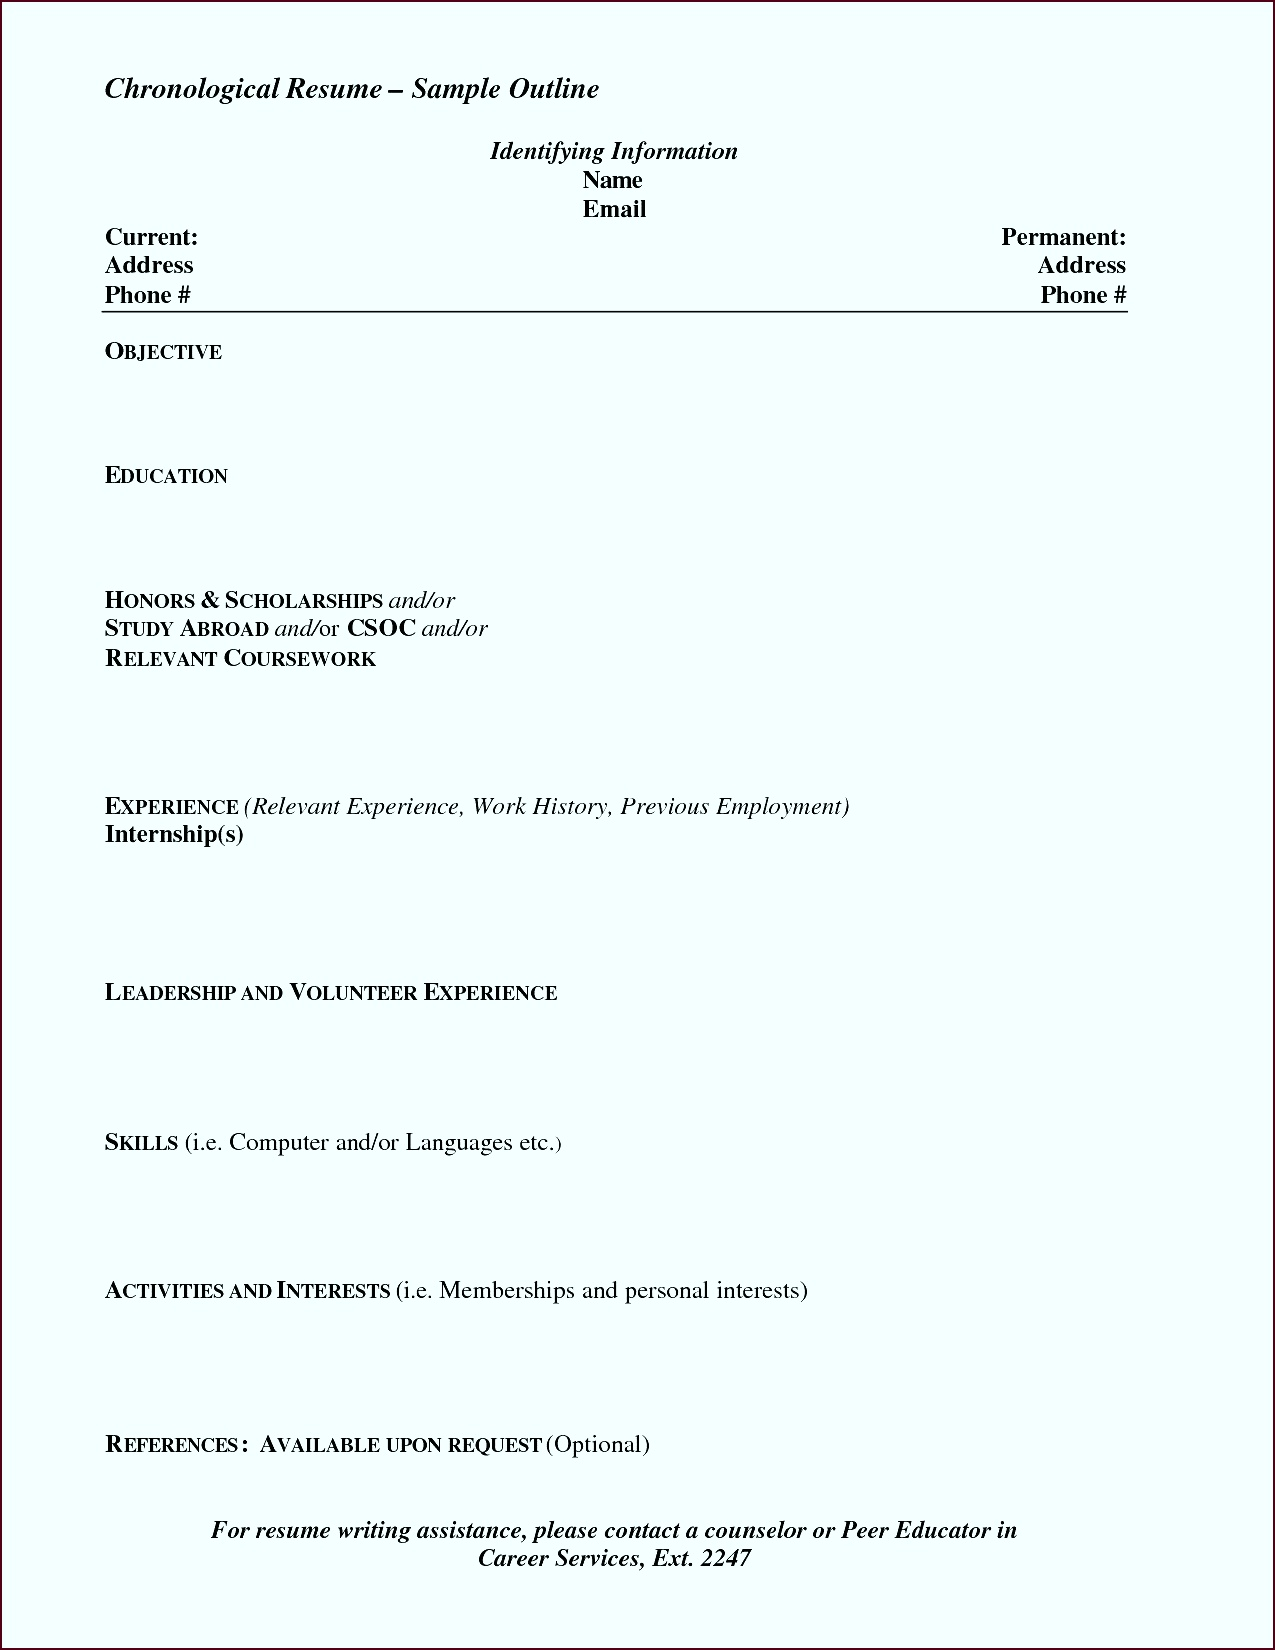 Teacher Cover Letter Template Awesome Resume Cover Letter Elementary School Arts Teacher Cover Letters tuywt